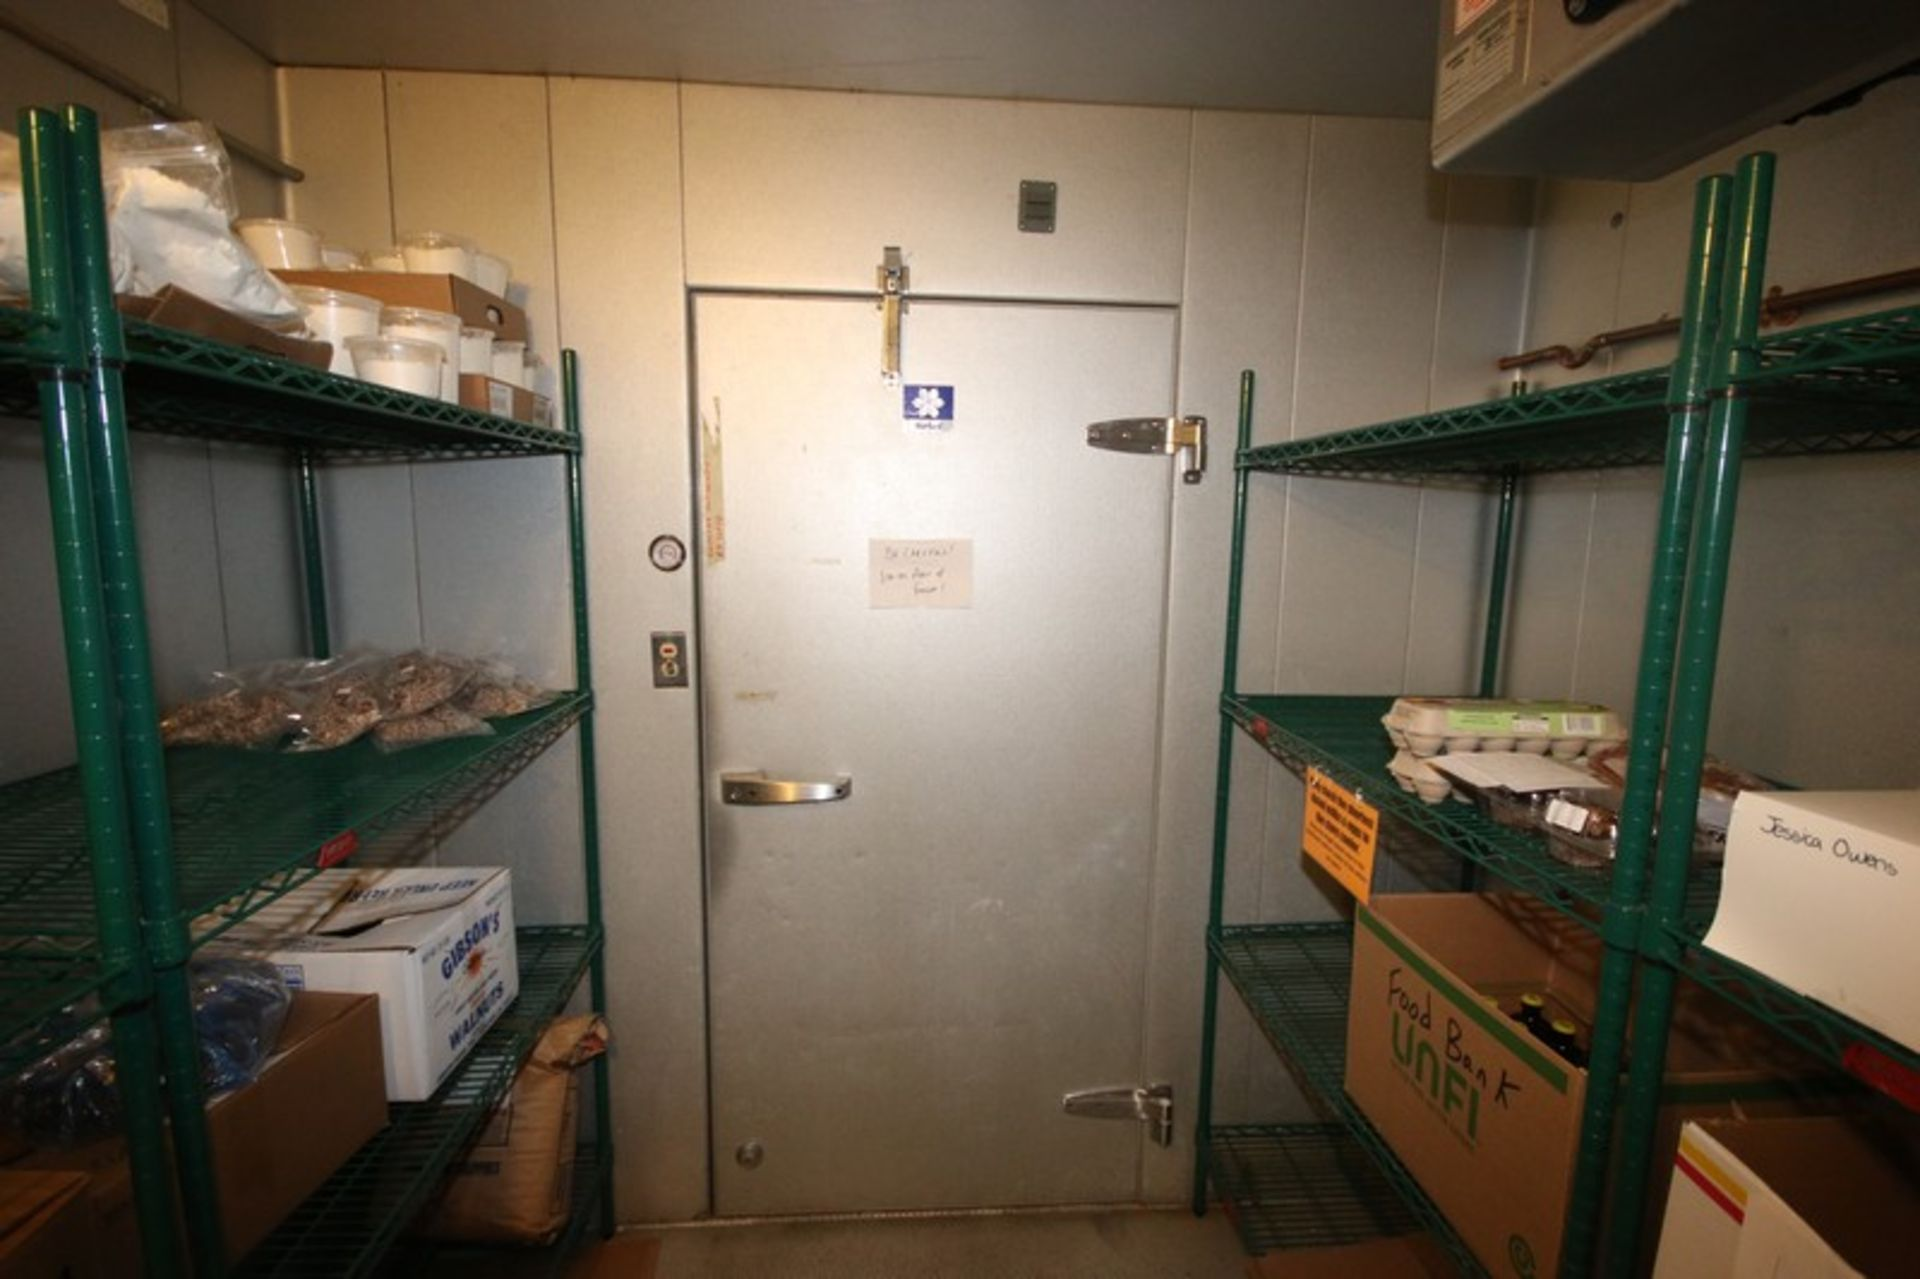 Harford Dual Compartment Walk-In Cooler & Freezer, M/N DR36788W5H8D, S/N XW703D9, Compartment Sizes: - Image 9 of 16